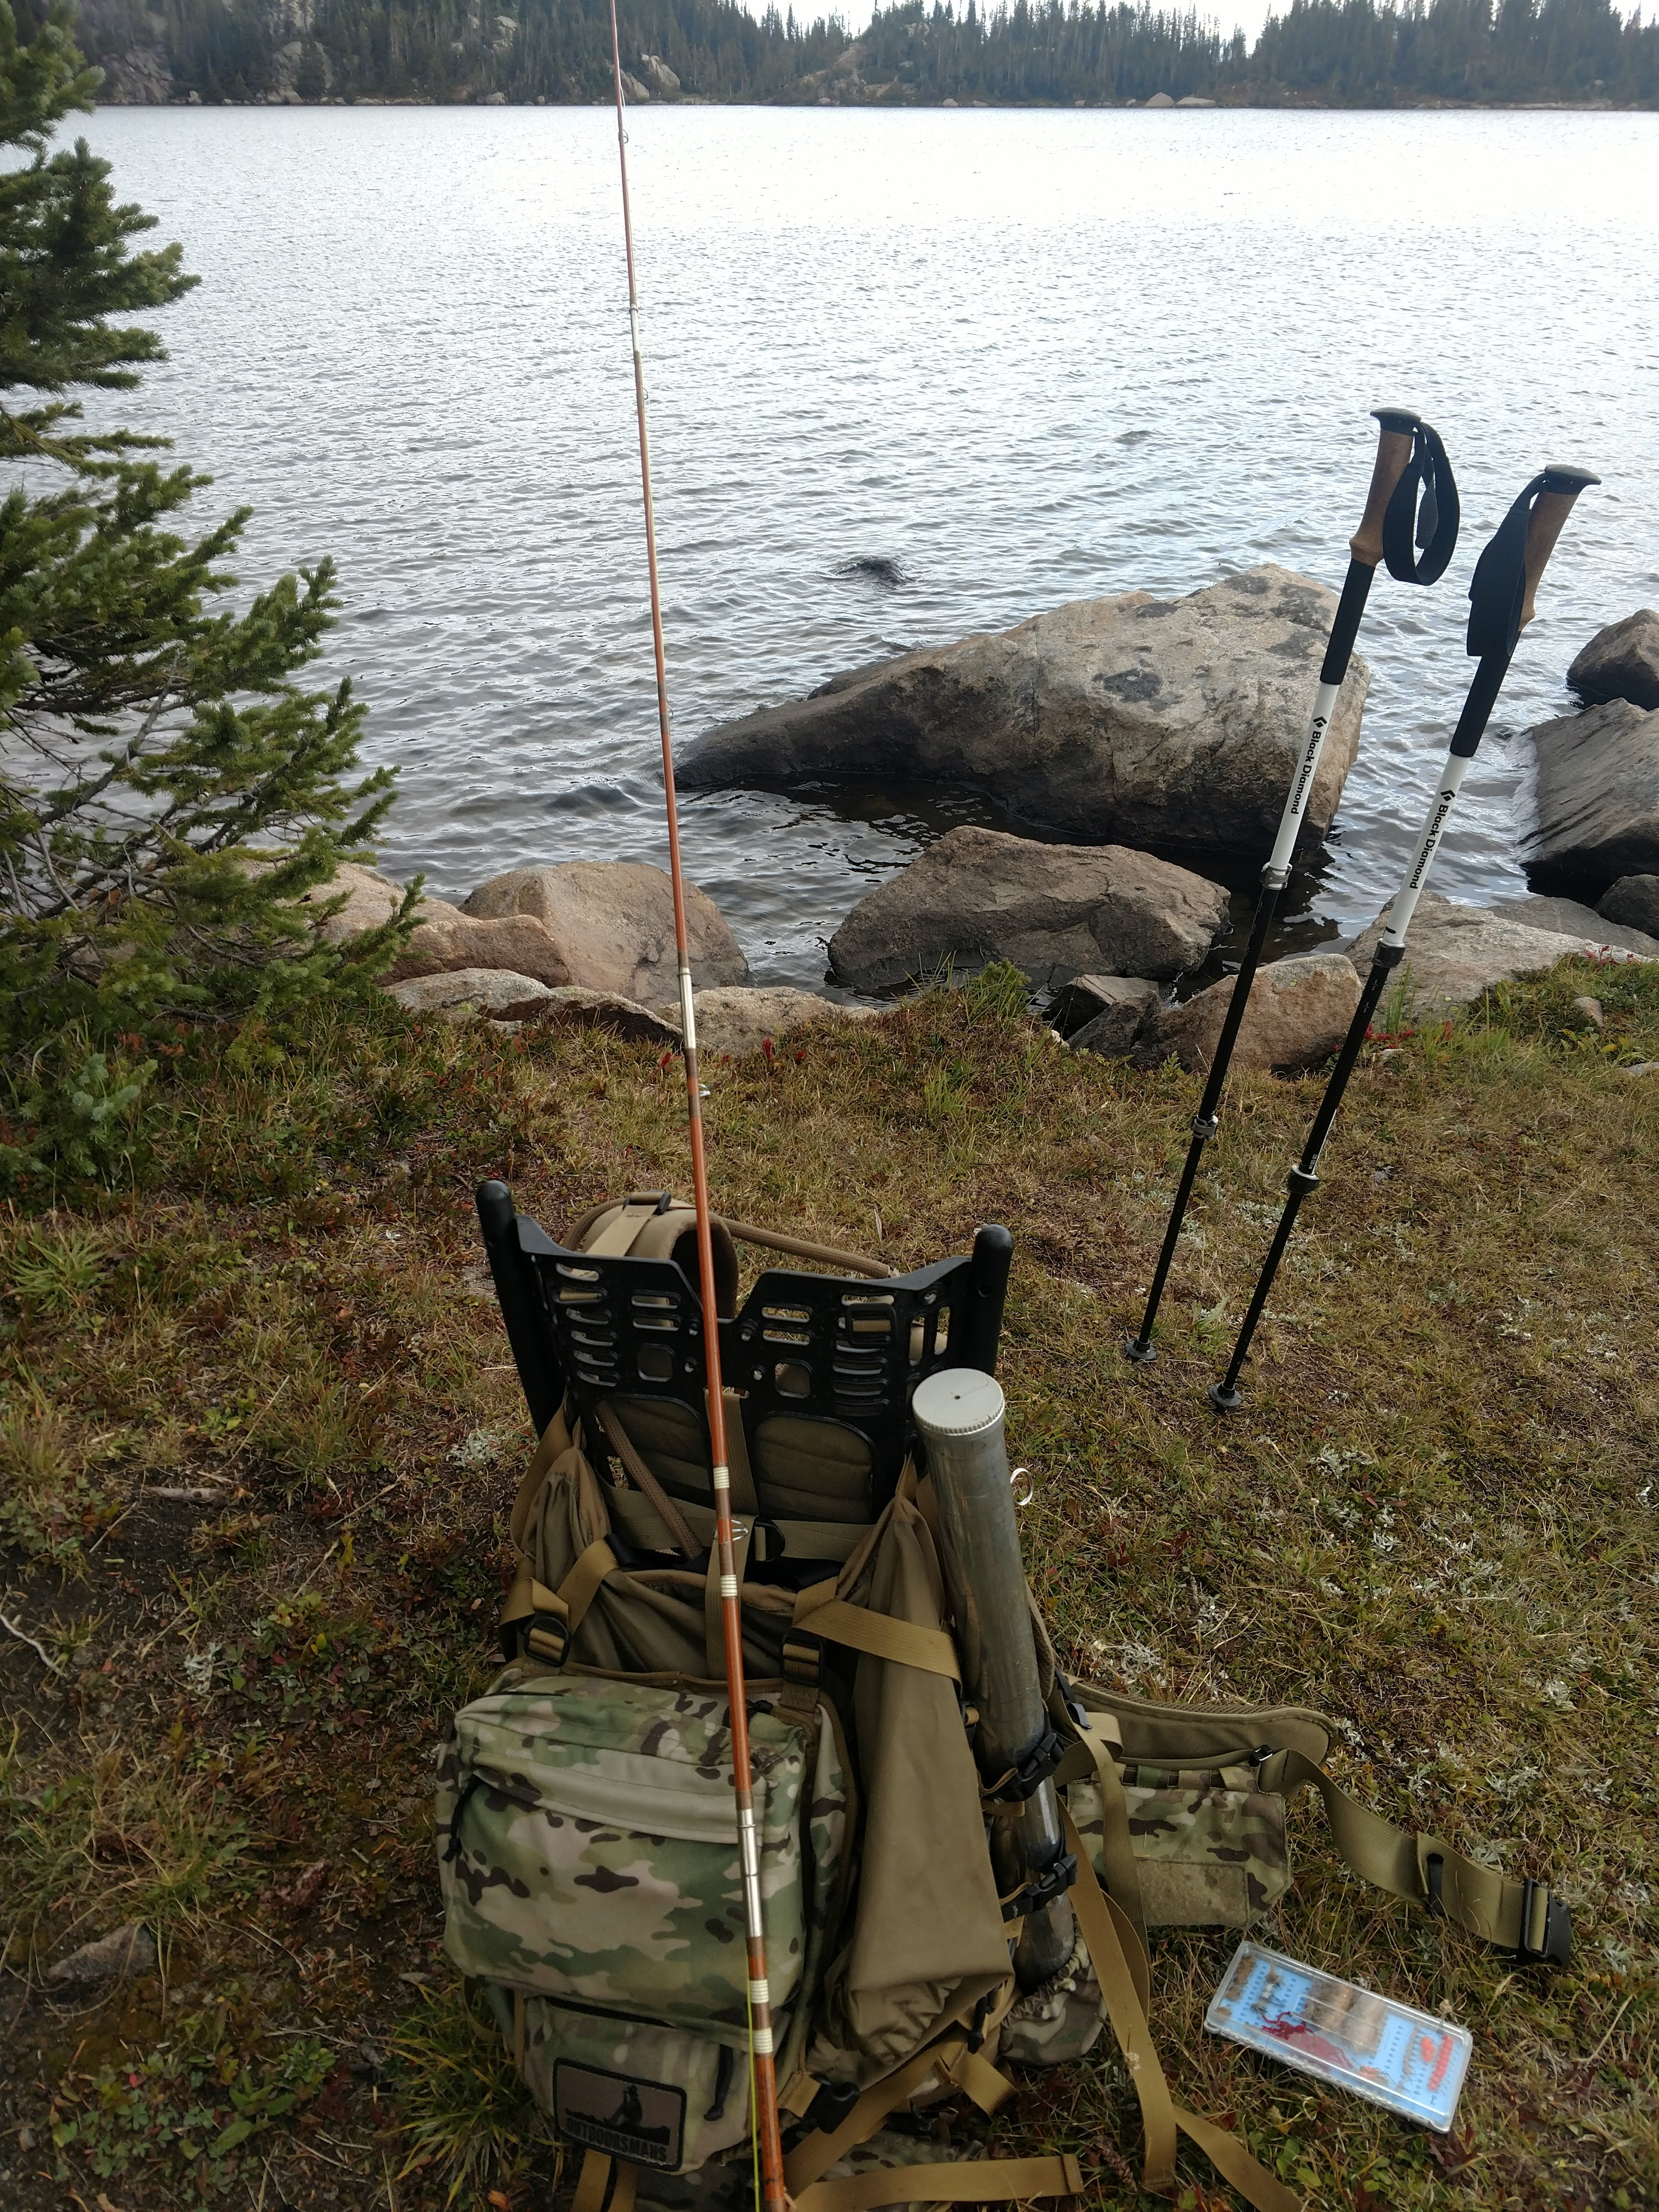 Outdoorsmans pack frame with a trail rod.